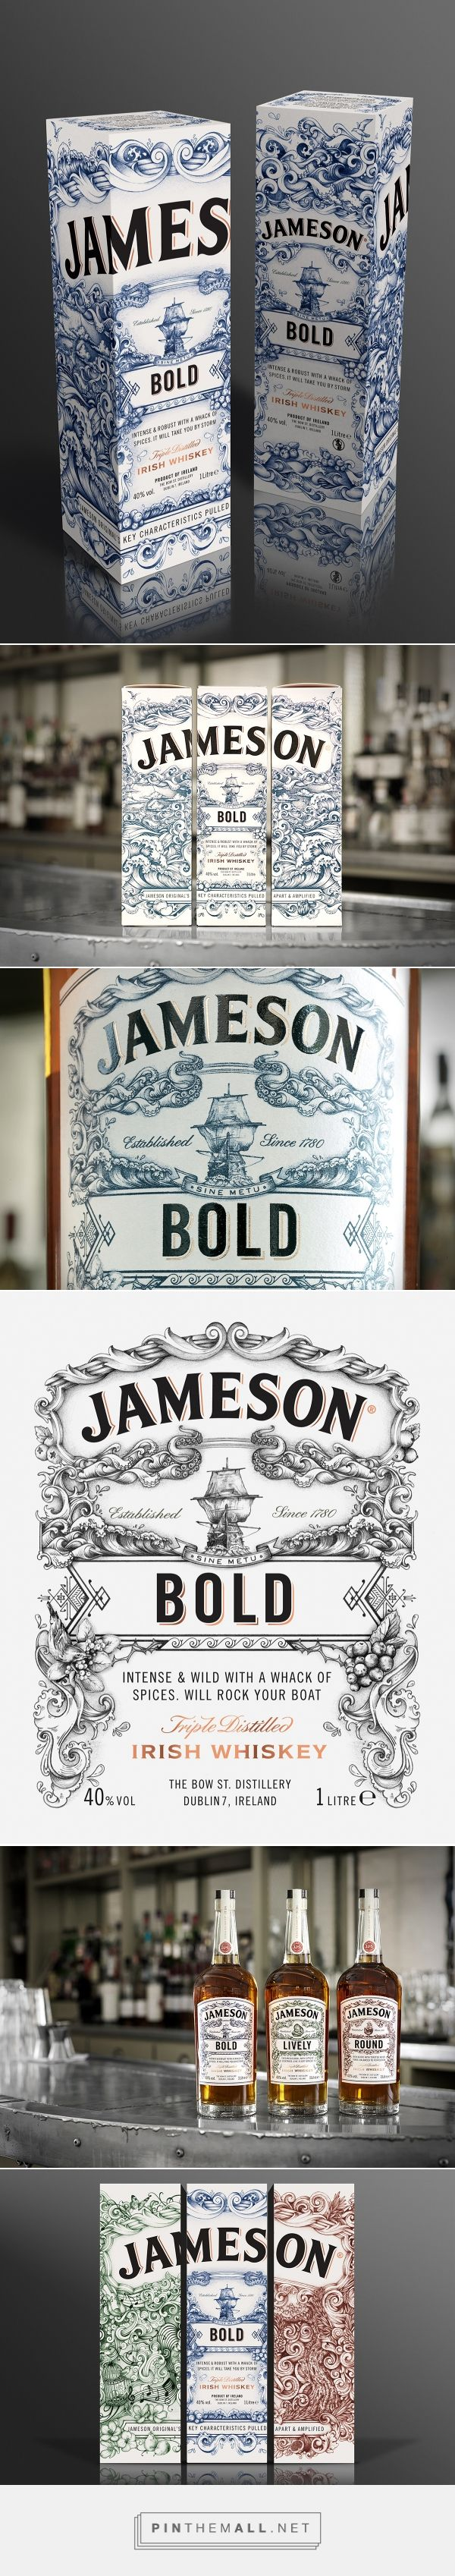 Jameson Whiskey - Deconstructed Series 'BOLD' (Bottle Packaging)